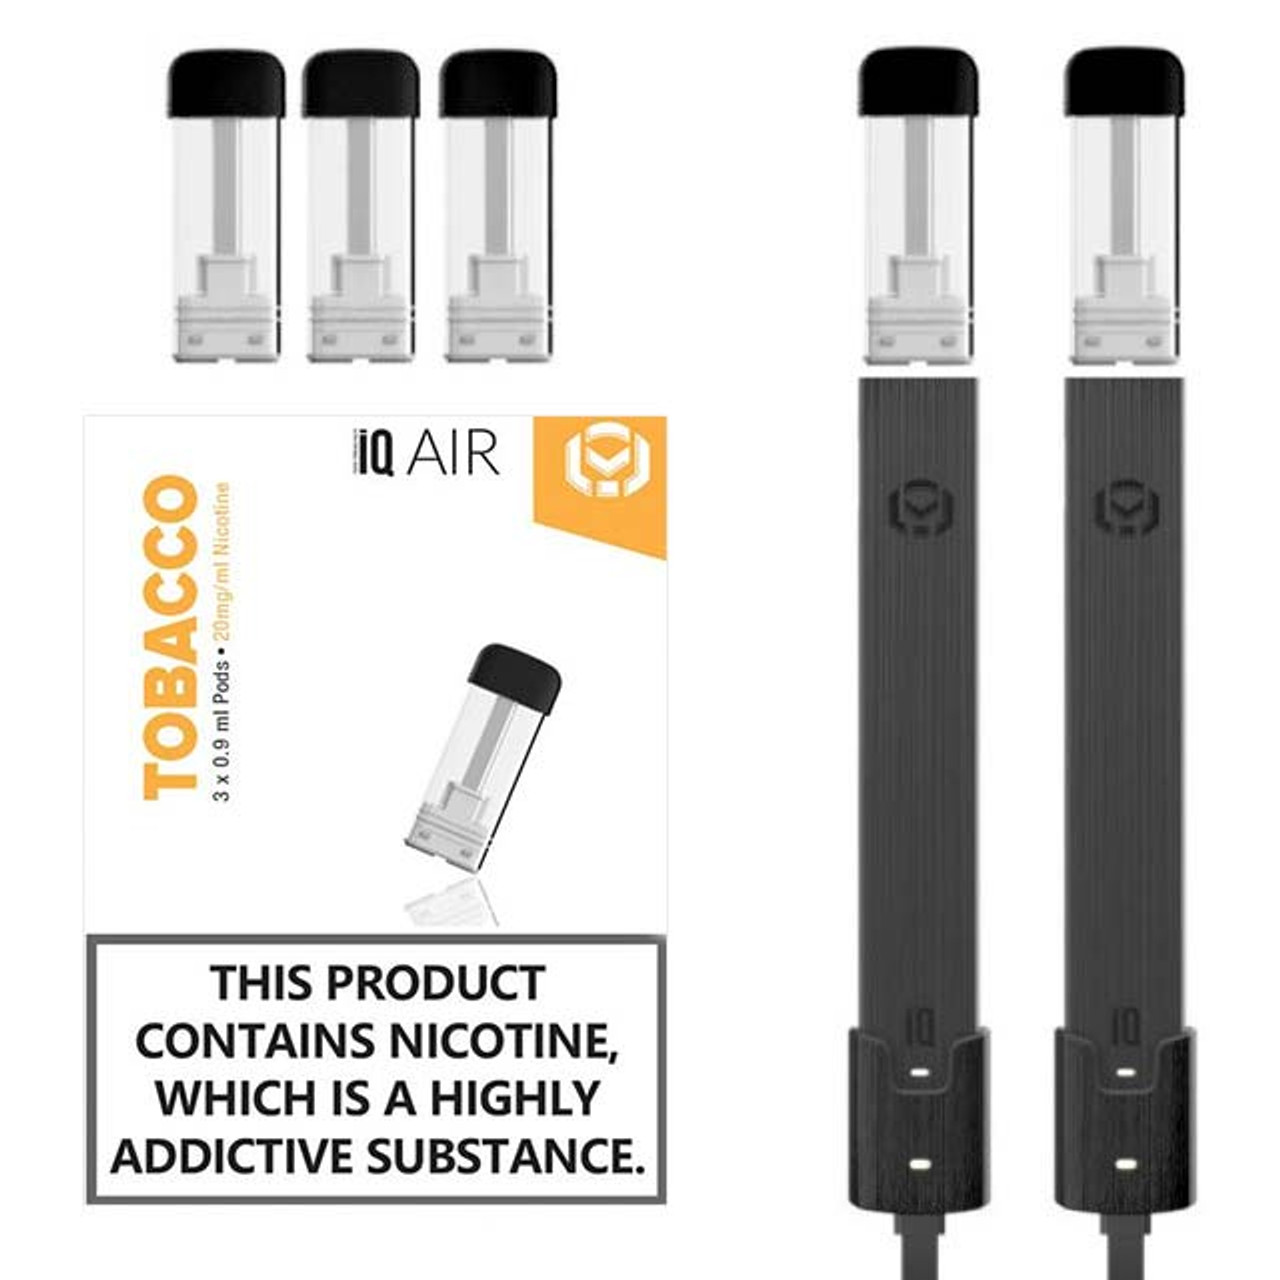 IQ Air Nicotine Salts Vape Kit